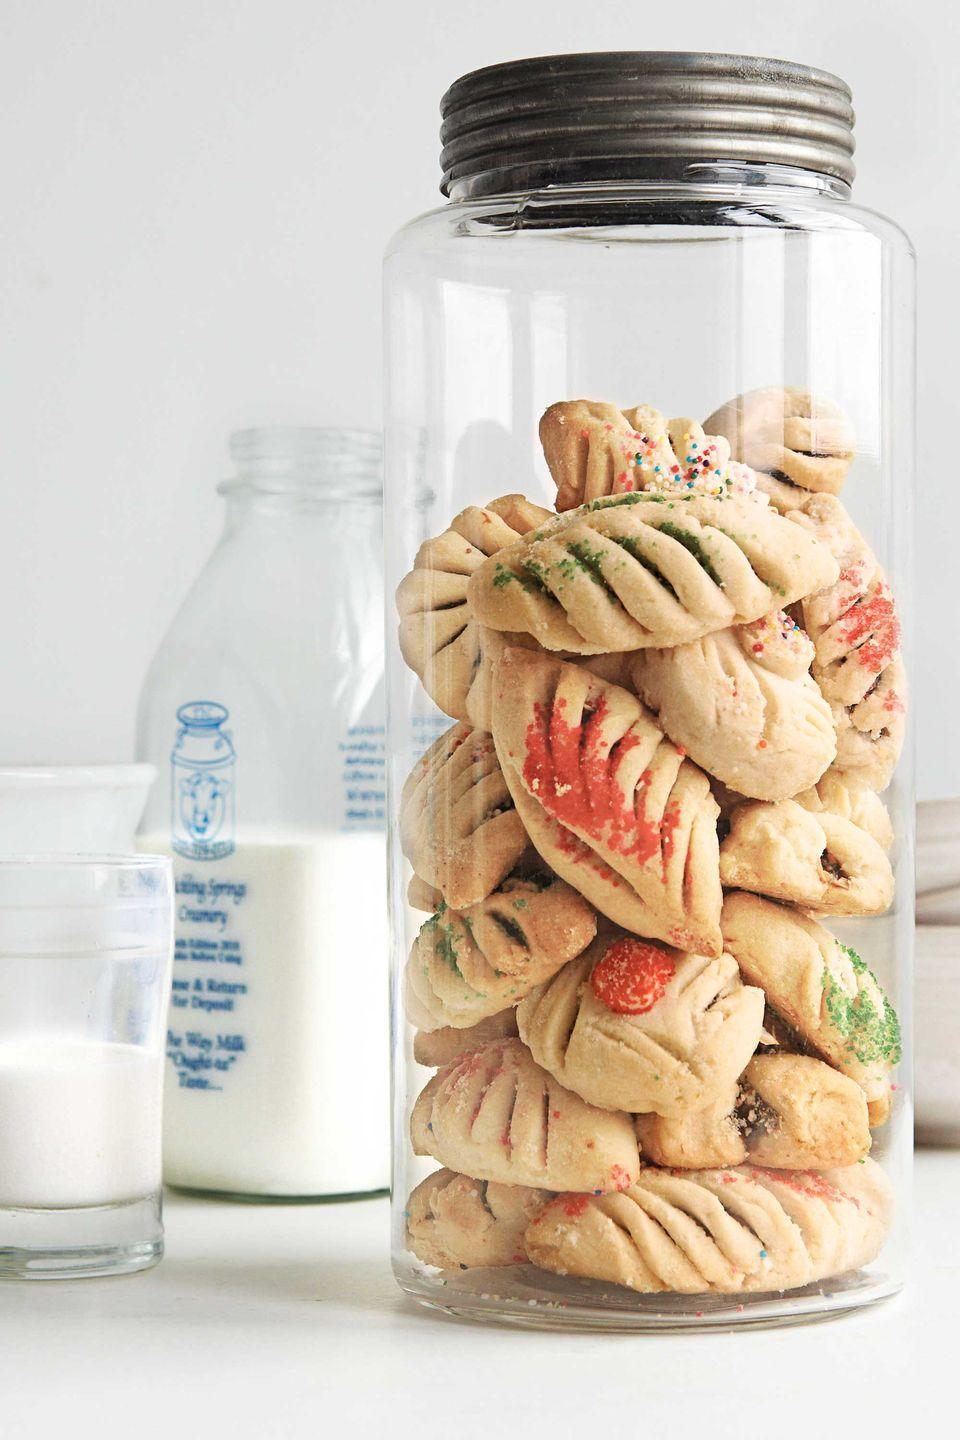 """<p>Fancify traditional sugar-cookie dough, by filling in with a mixture of figs, chocolate, and orange marmalade, then scoring a pretty fan pattern on top. </p><p><strong><a href=""""https://www.countryliving.com/food-drinks/recipes/a3767/fig-cookies-recipe-clx1211/"""" rel=""""nofollow noopener"""" target=""""_blank"""" data-ylk=""""slk:Get the recipe"""" class=""""link rapid-noclick-resp"""">Get the recipe</a>.</strong></p>"""